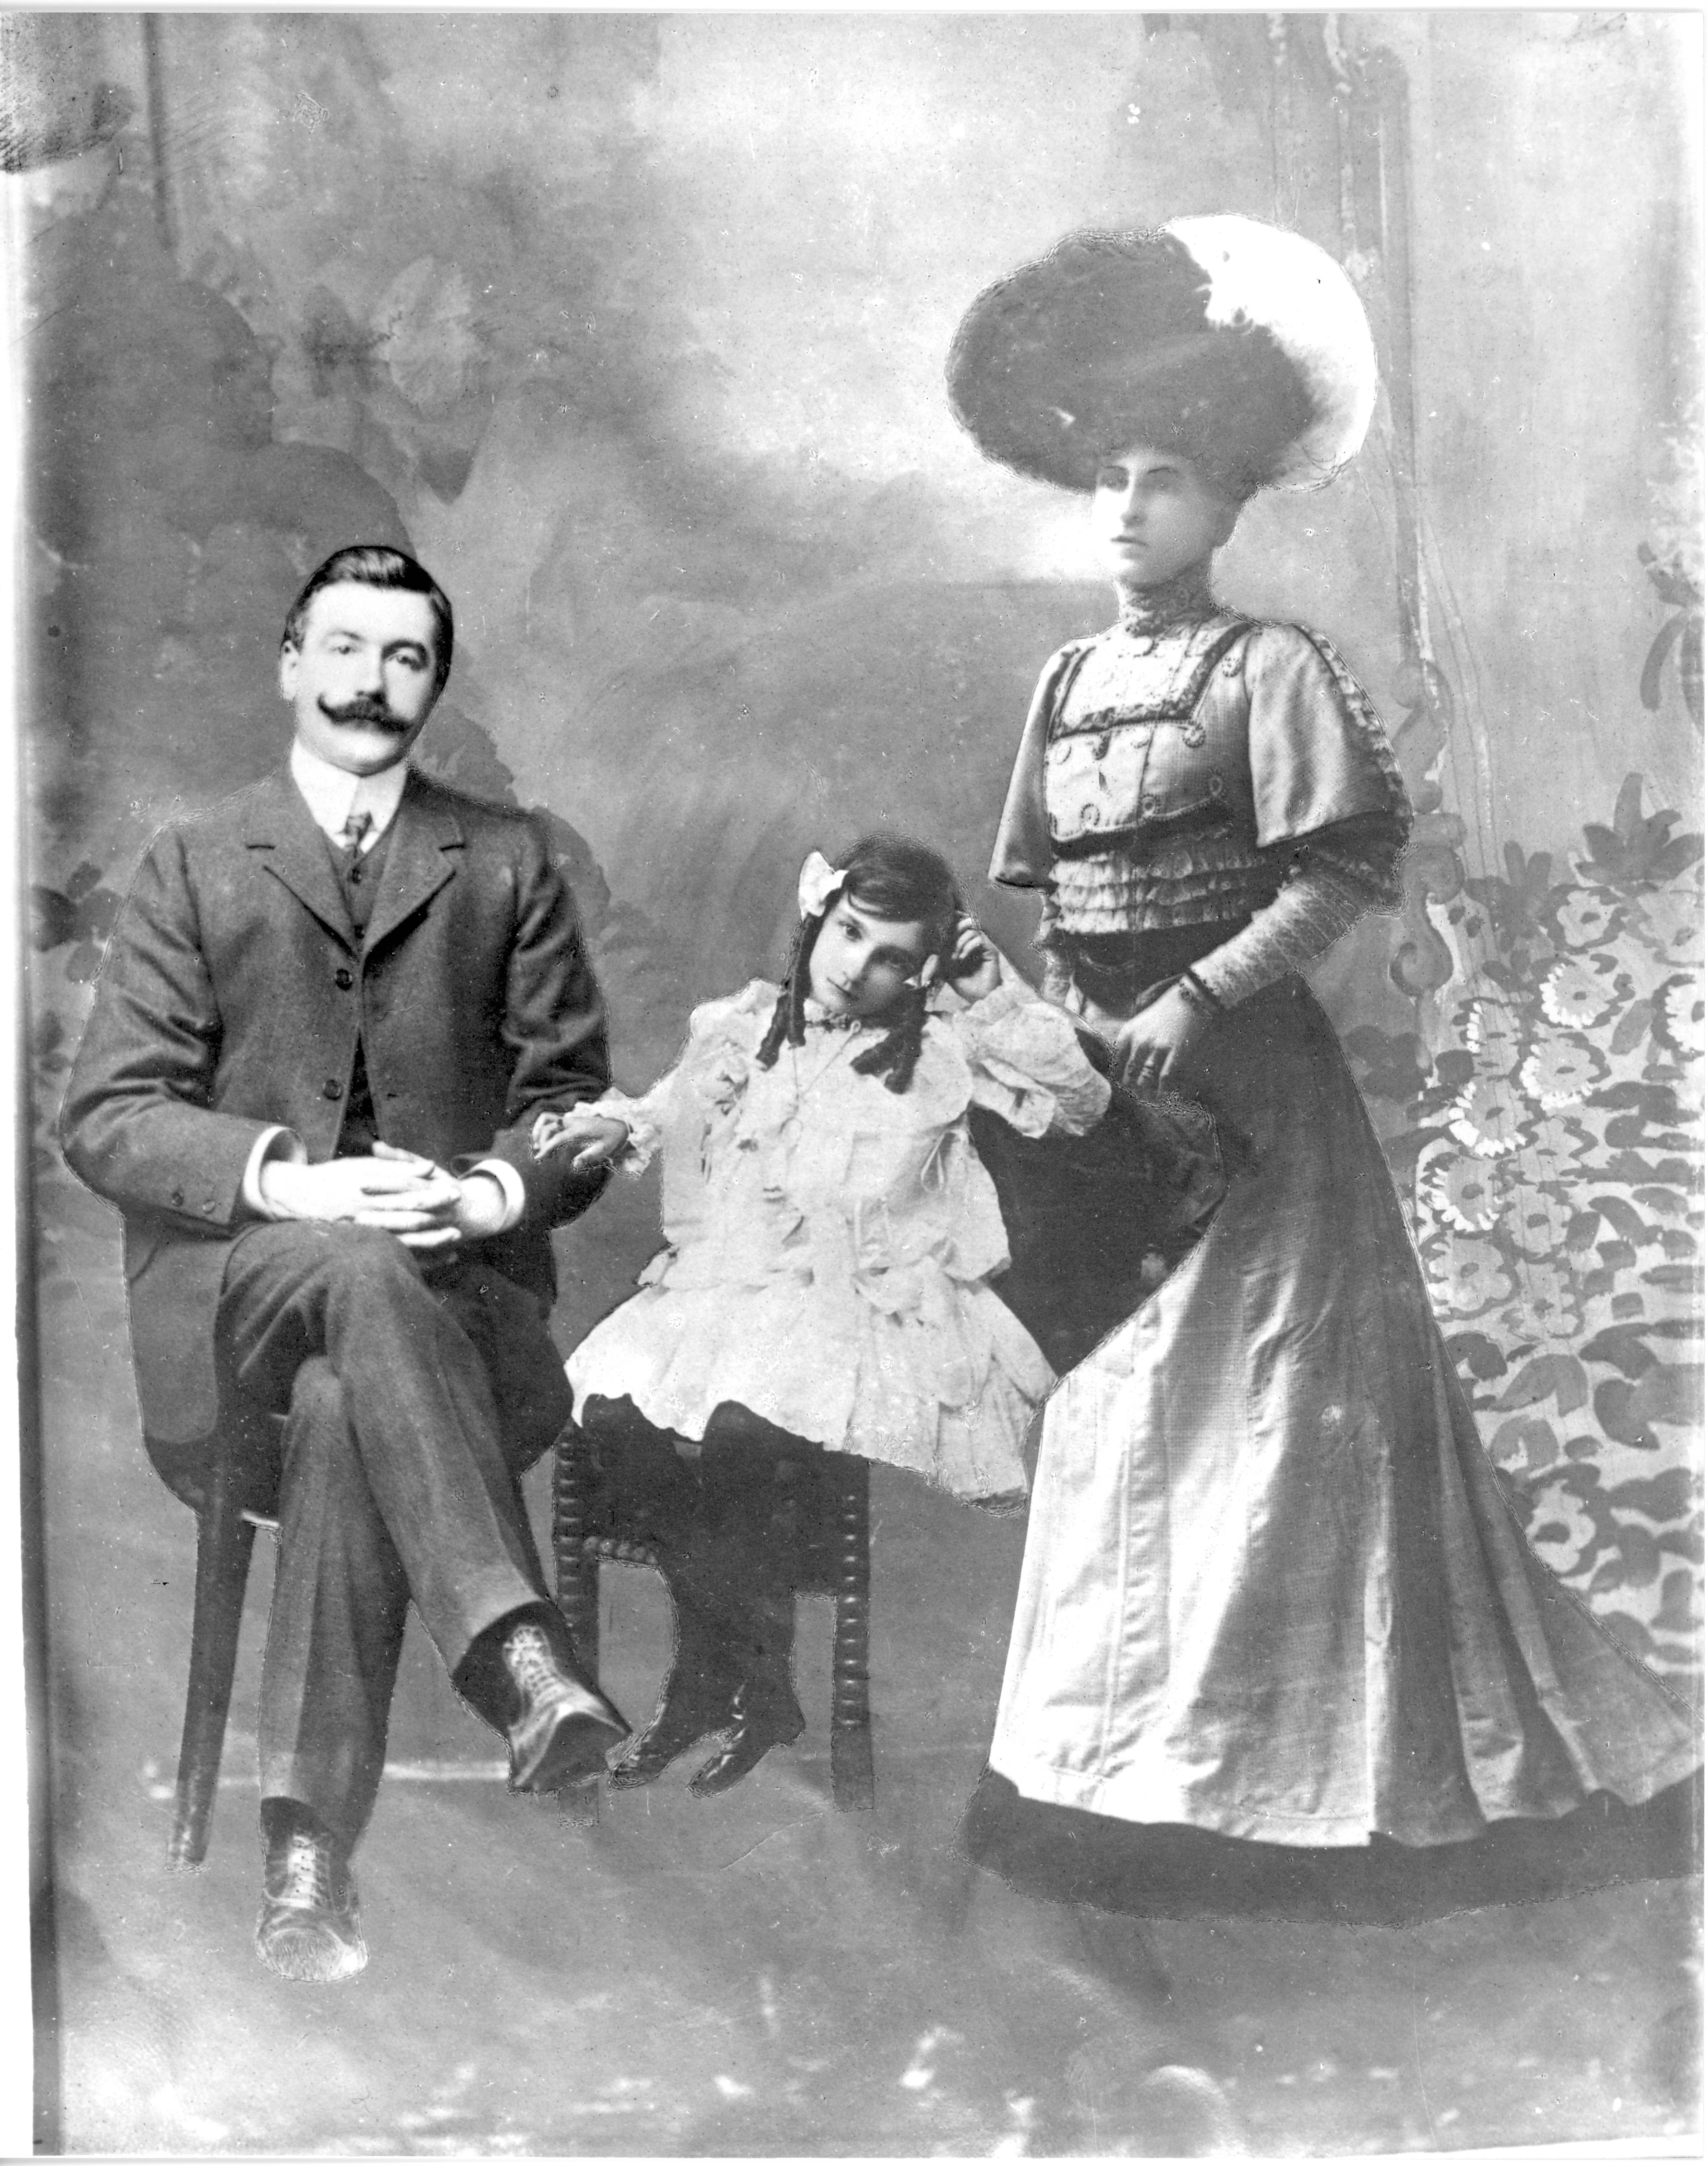 Detective Kavanagh and Family 1908